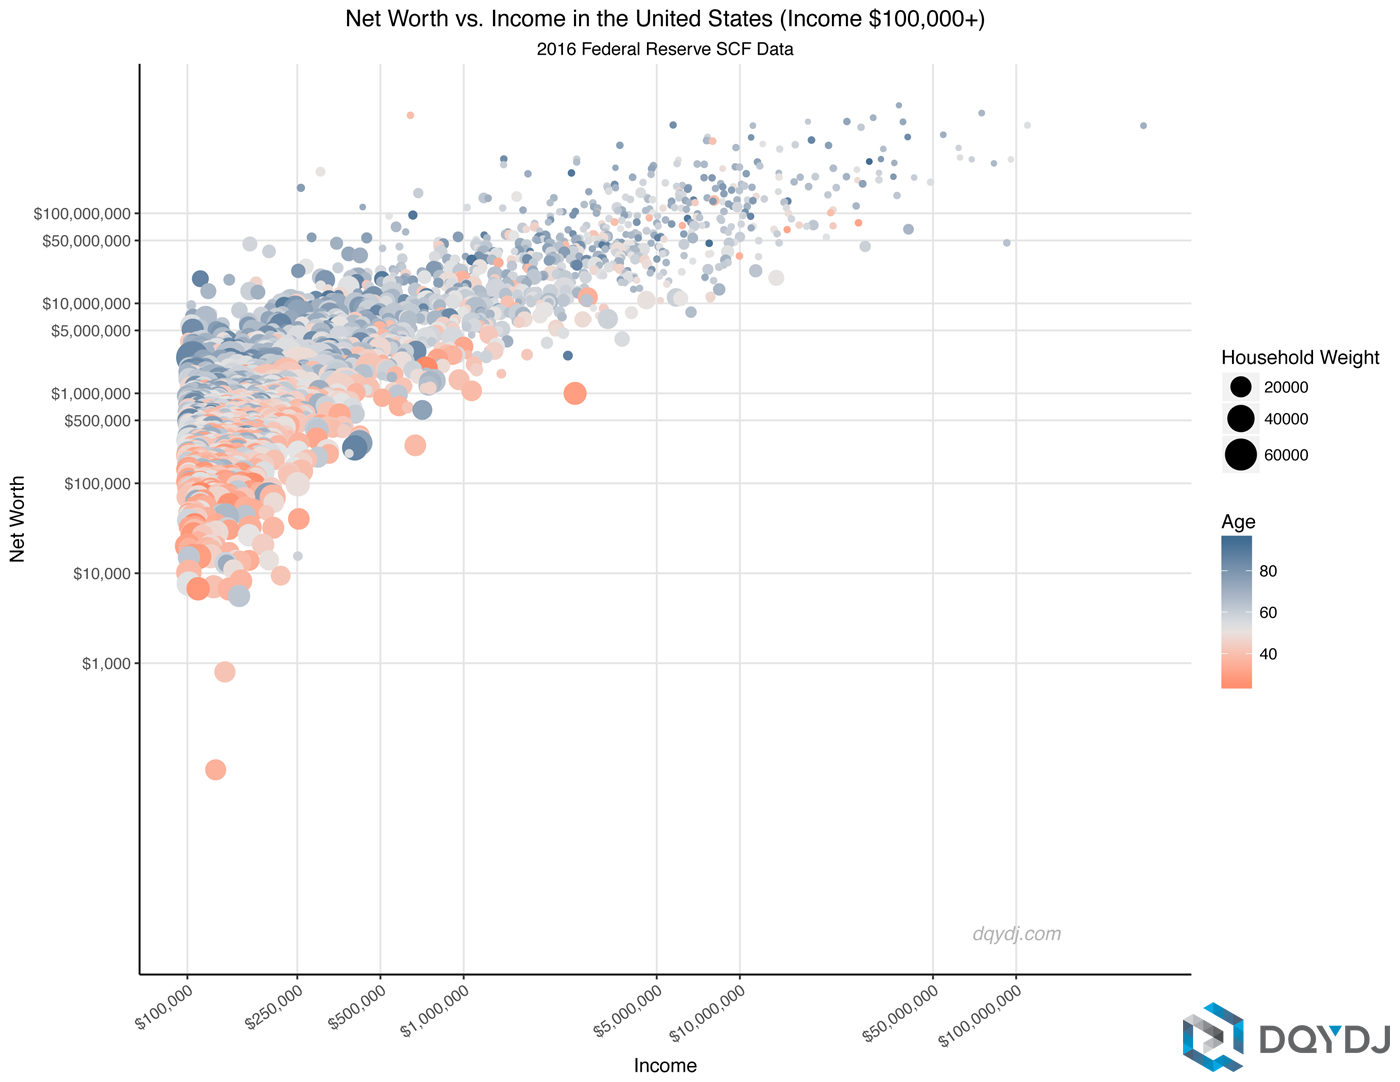 Correlation of Income and Net Worth for the Upper Middle Class measured by household income over $100,000